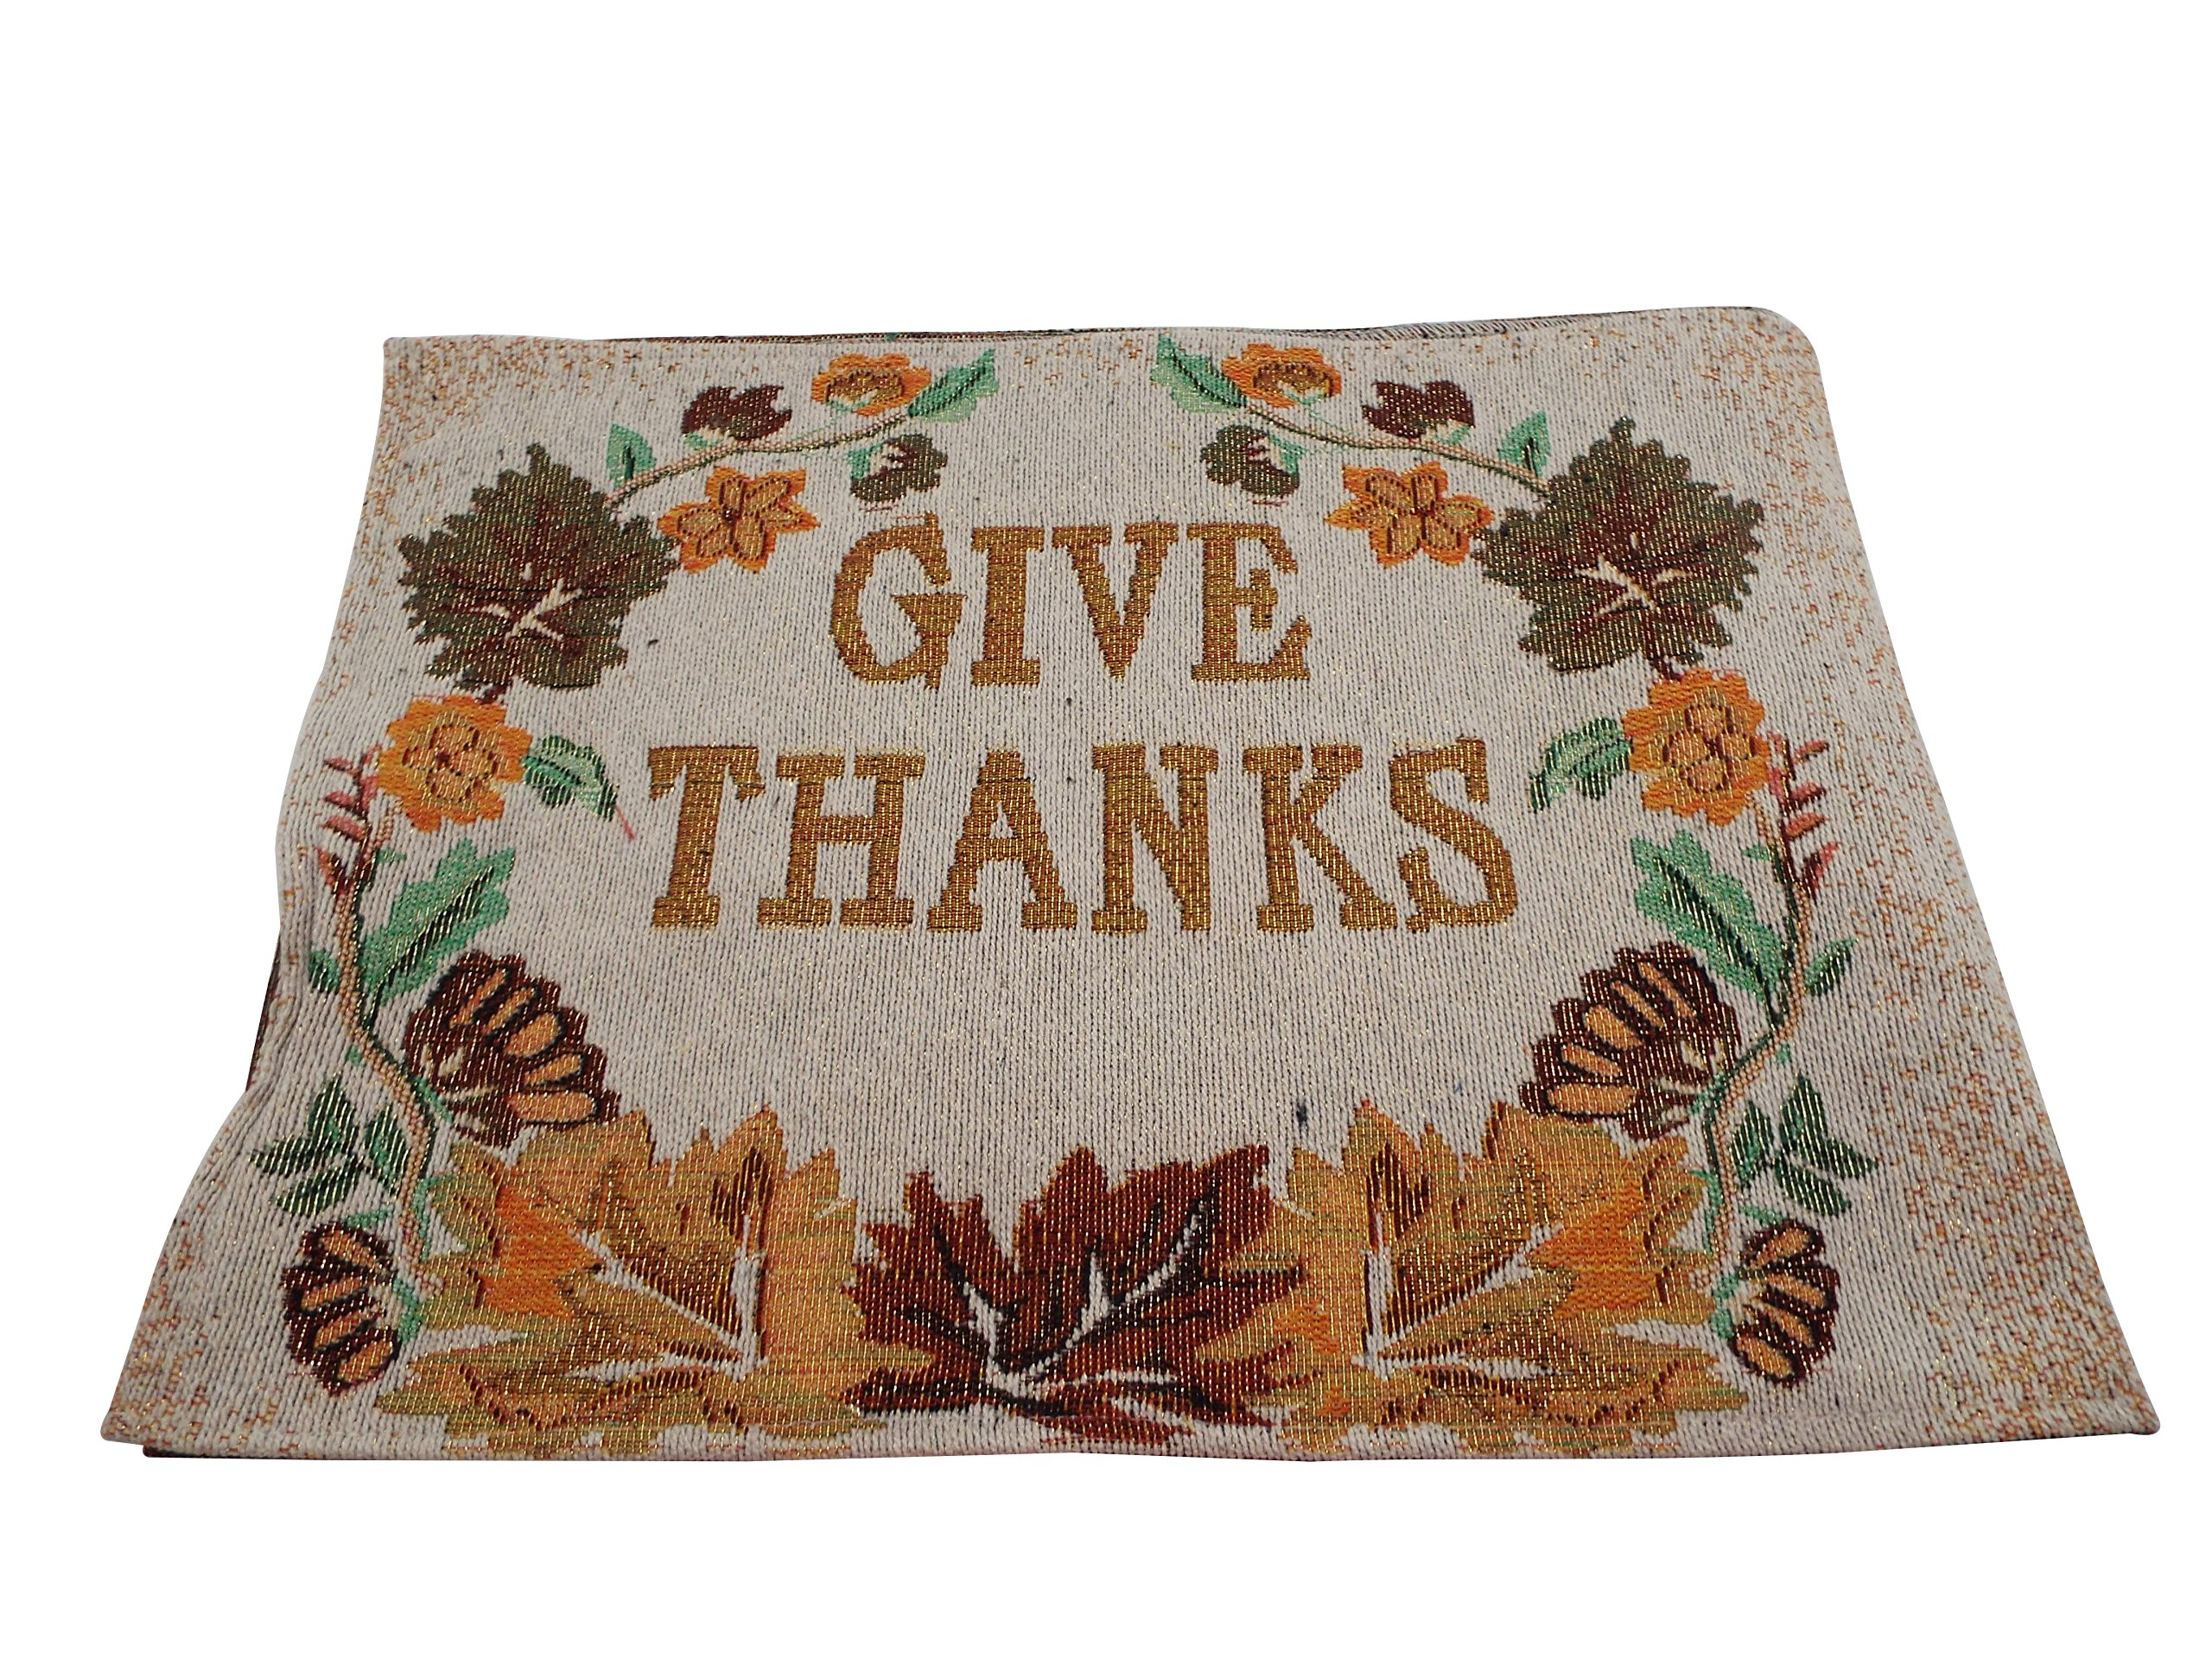 Fall ''Give Thanks'' Placemats - Set of 4 - Tapestry with Gold Block Lettering - 13 x 19 Inches